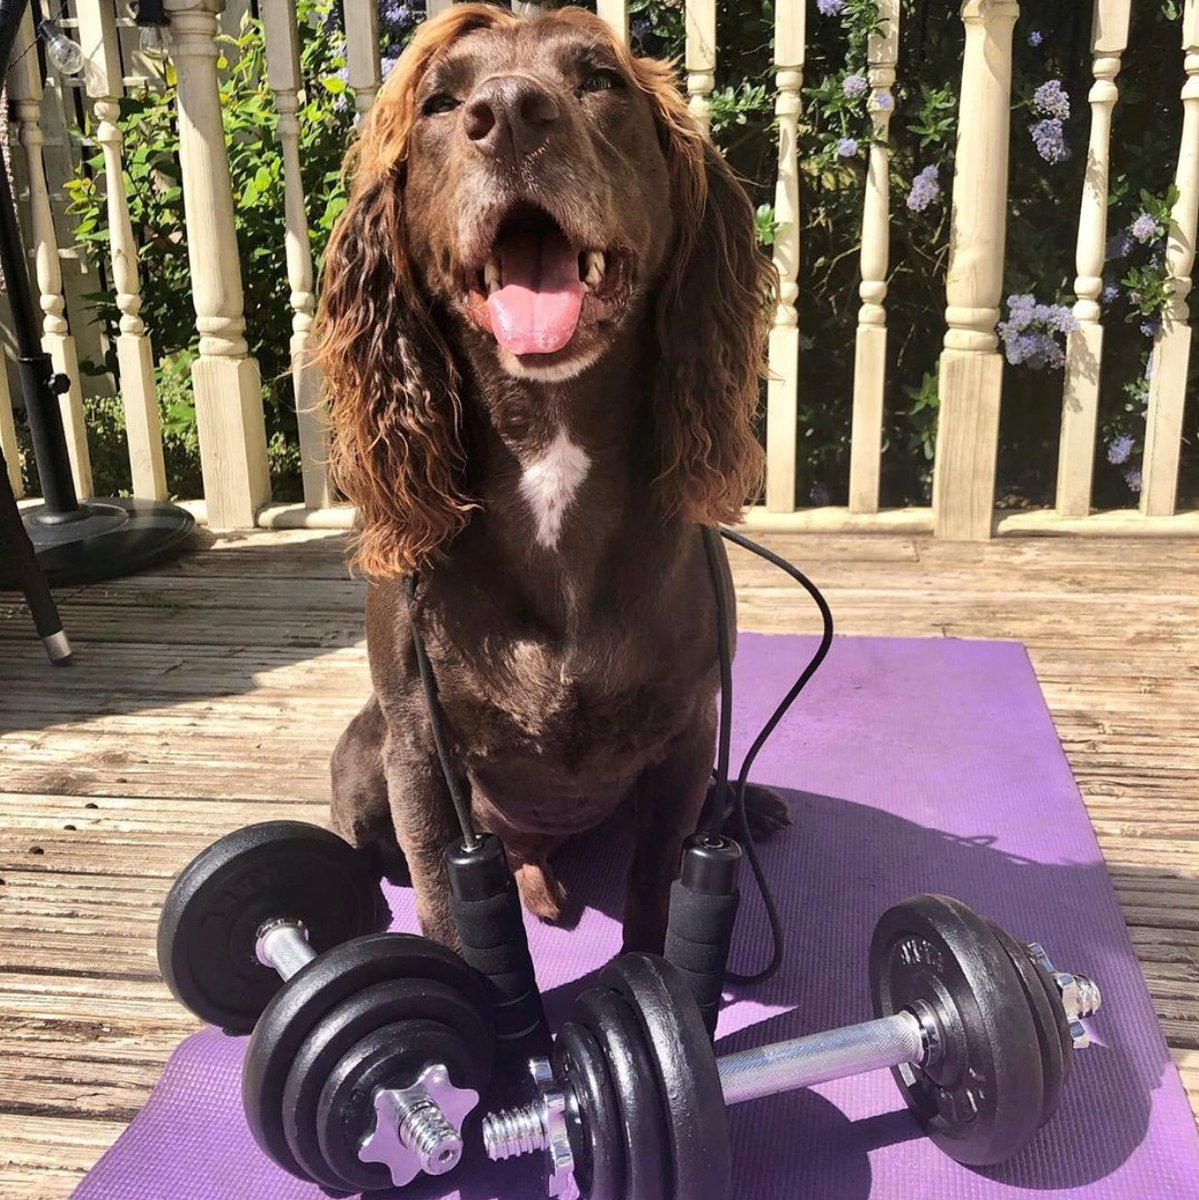 We all know how important (and super fun!) fitness is for us and our four-legged friends. Our buddies are embracing #NationalFitnessDay. We're not sure that's how you do the downward dog guys! 🤣 #BarkingHeads #HealthyDog #LoveDogs #DogsAreFamily #Fitness https://t.co/0CxxvHii2M